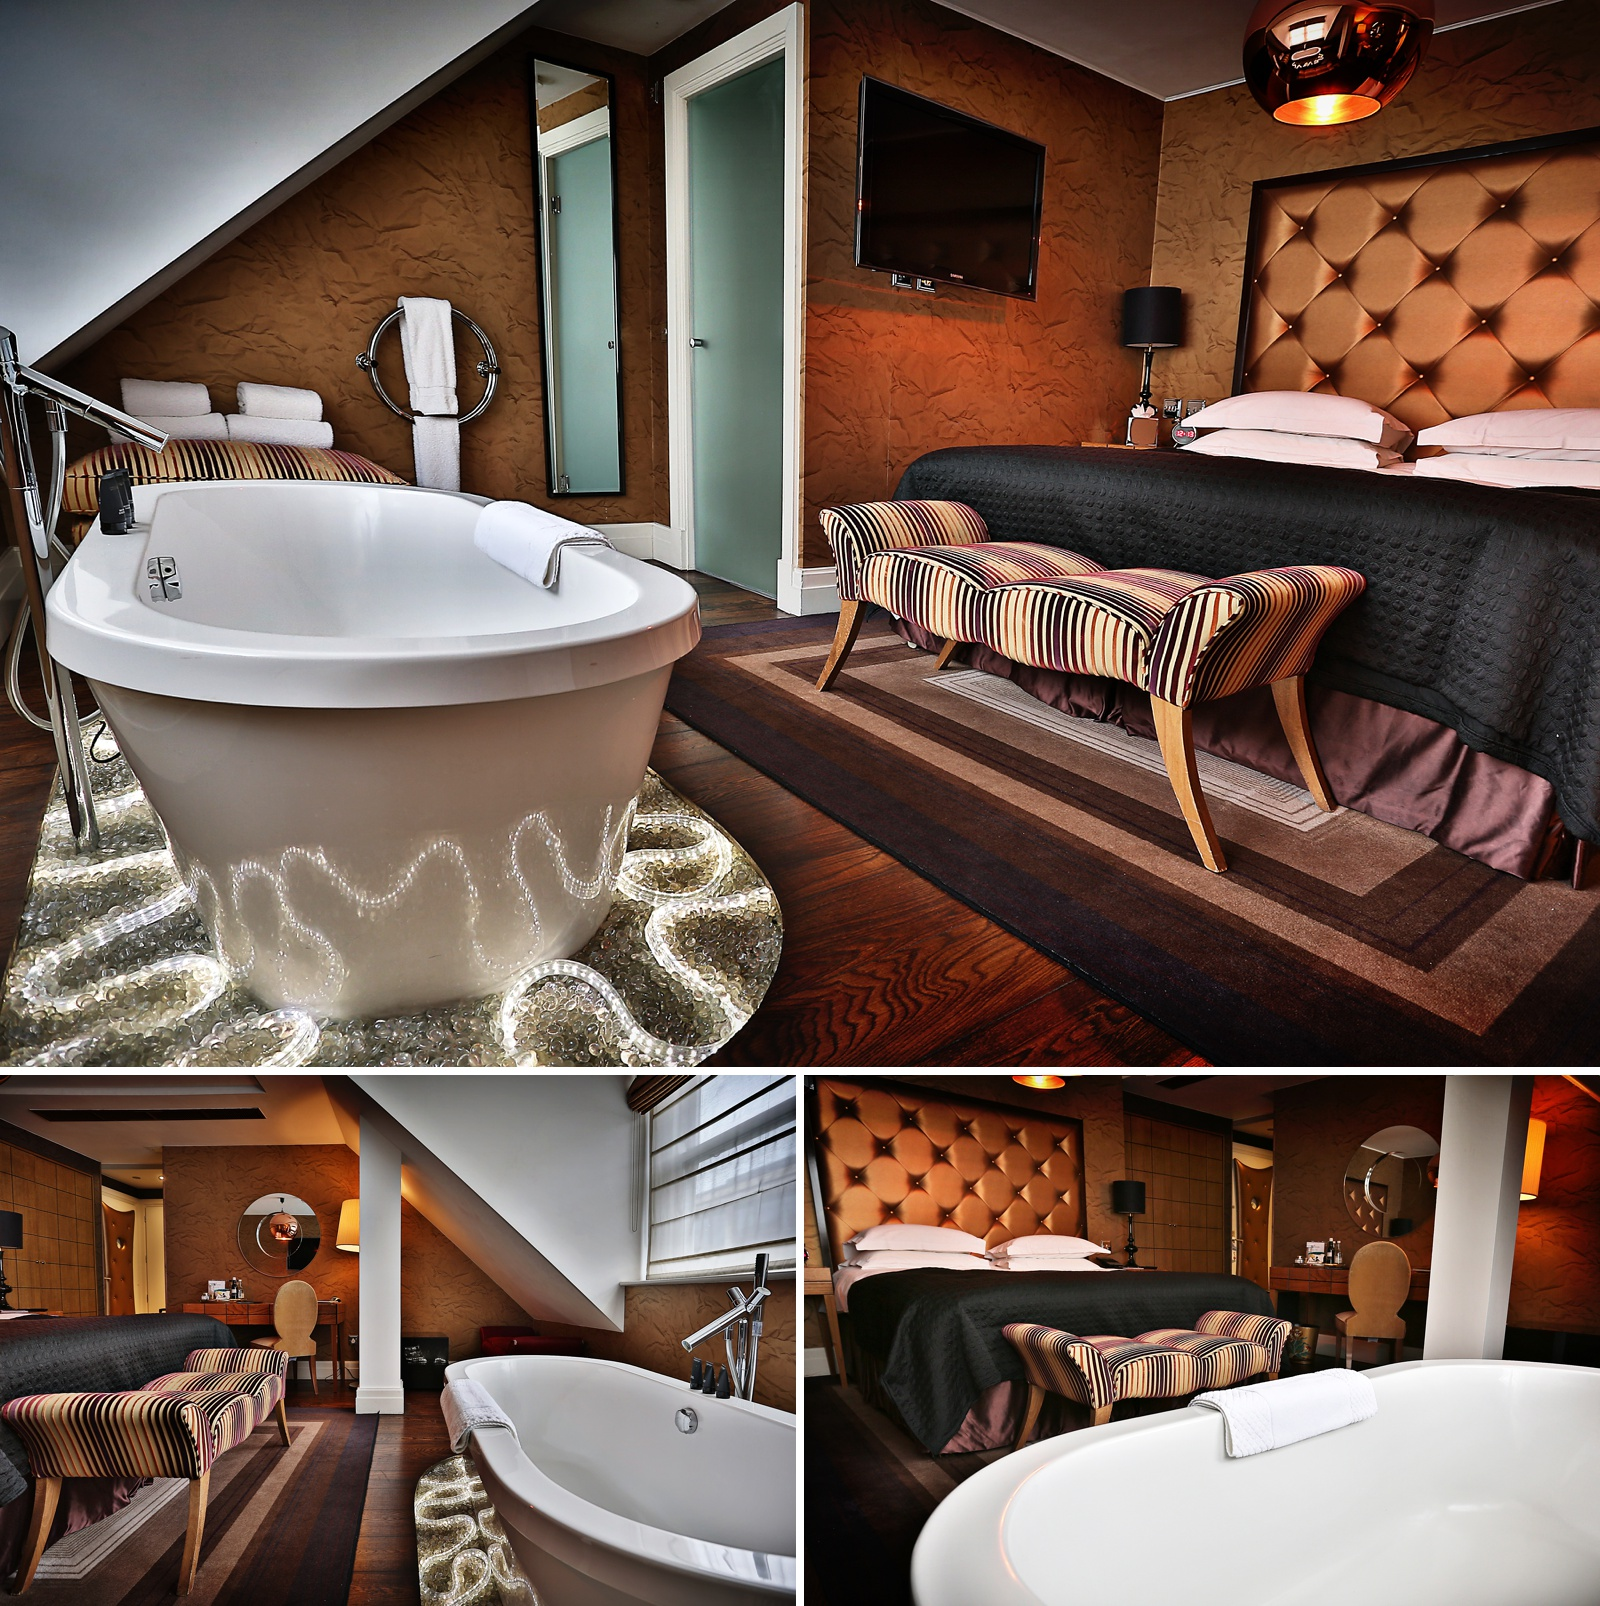 The Sanctum Hotel in London, a bedroom